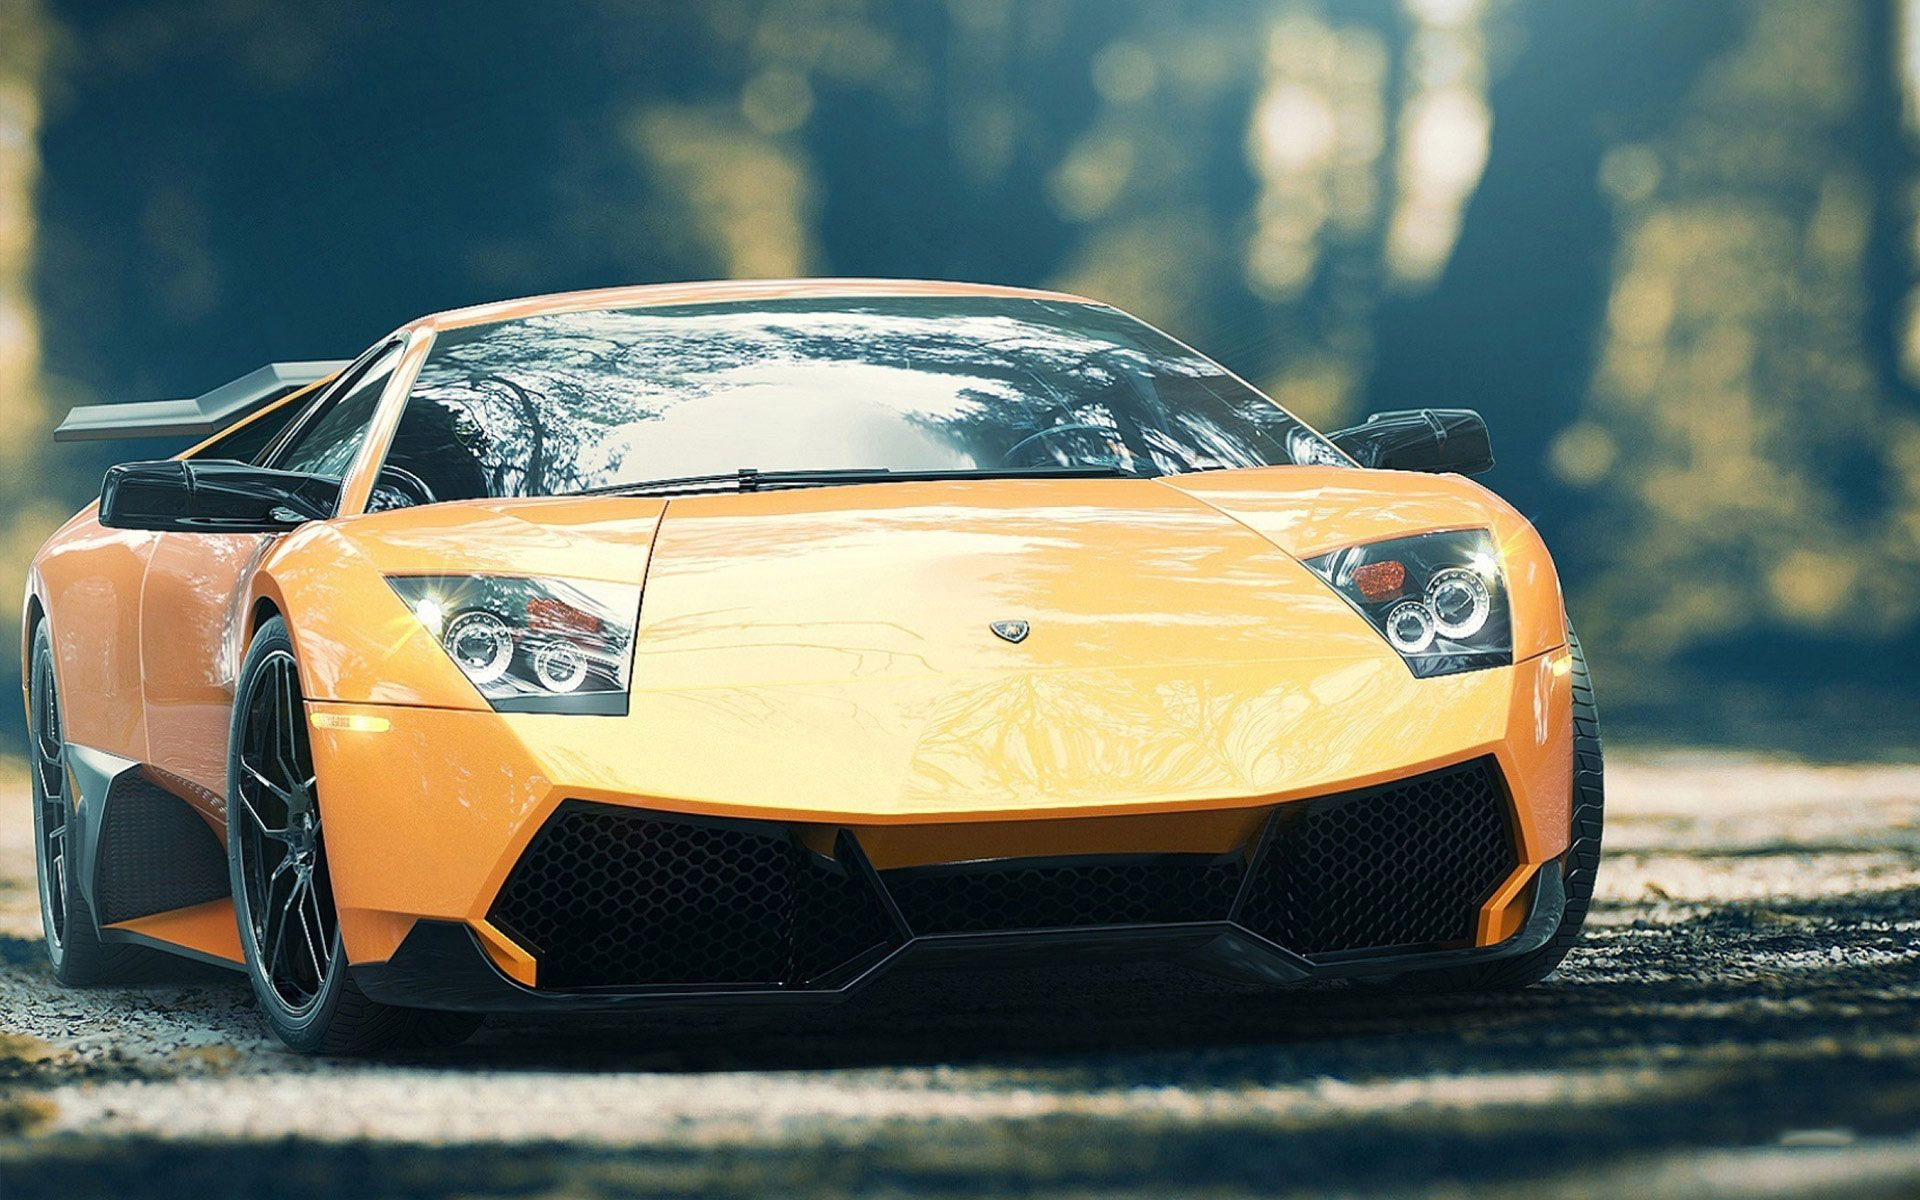 Hd wallpaper cars - Super Sports Car Wallpapers Thatll Blow Your Desktop Away 1920 1080 Pictures Of Cars Wallpapers